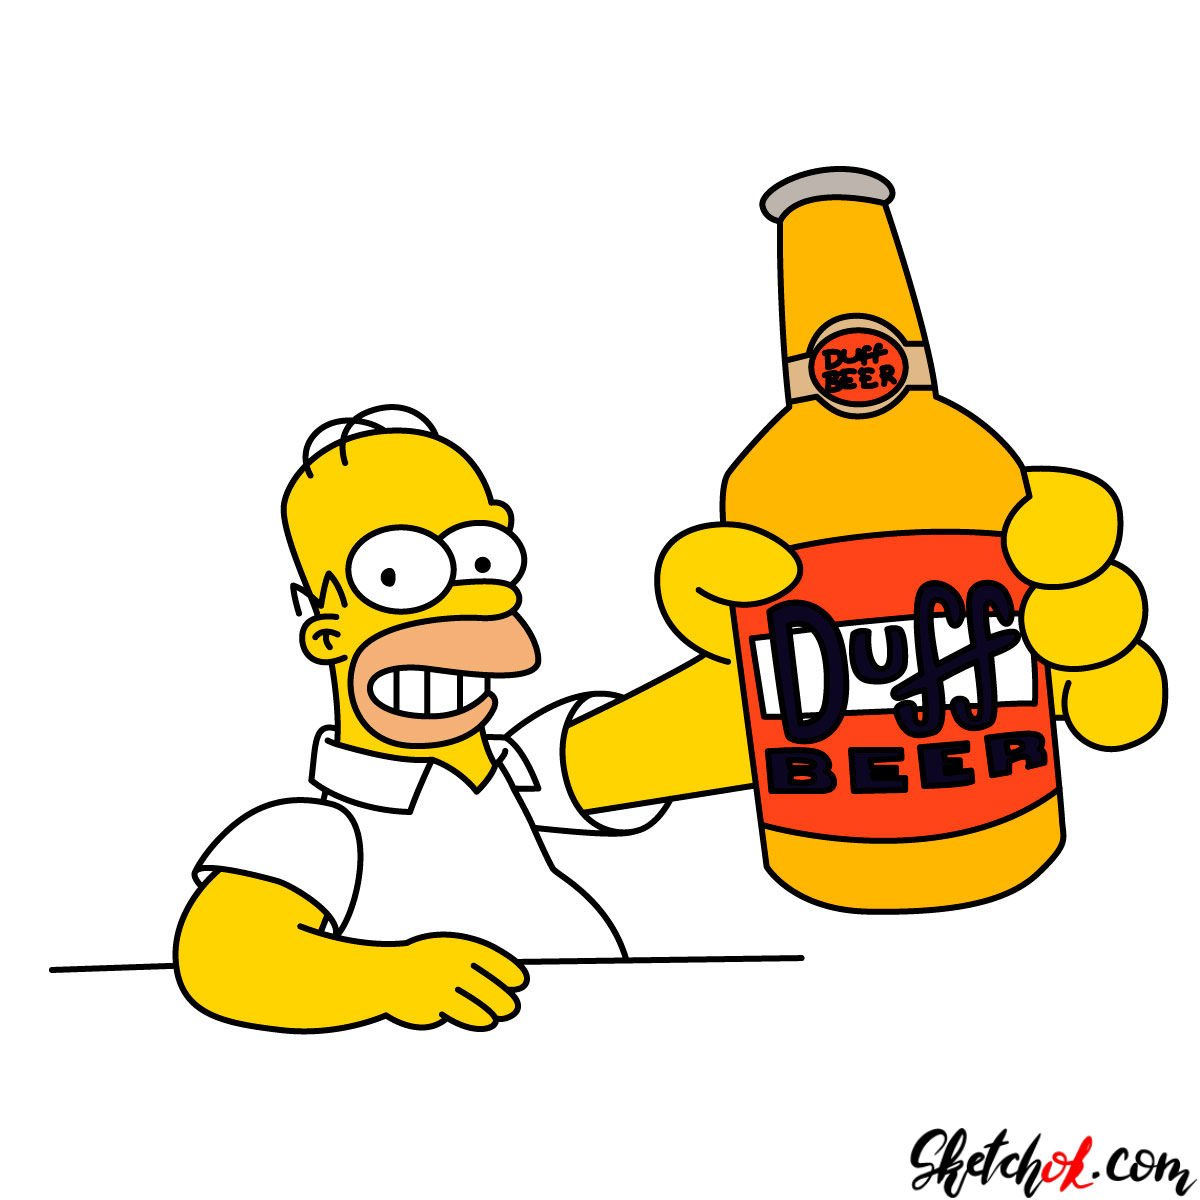 How to draw Homer with a Duff beer bottle